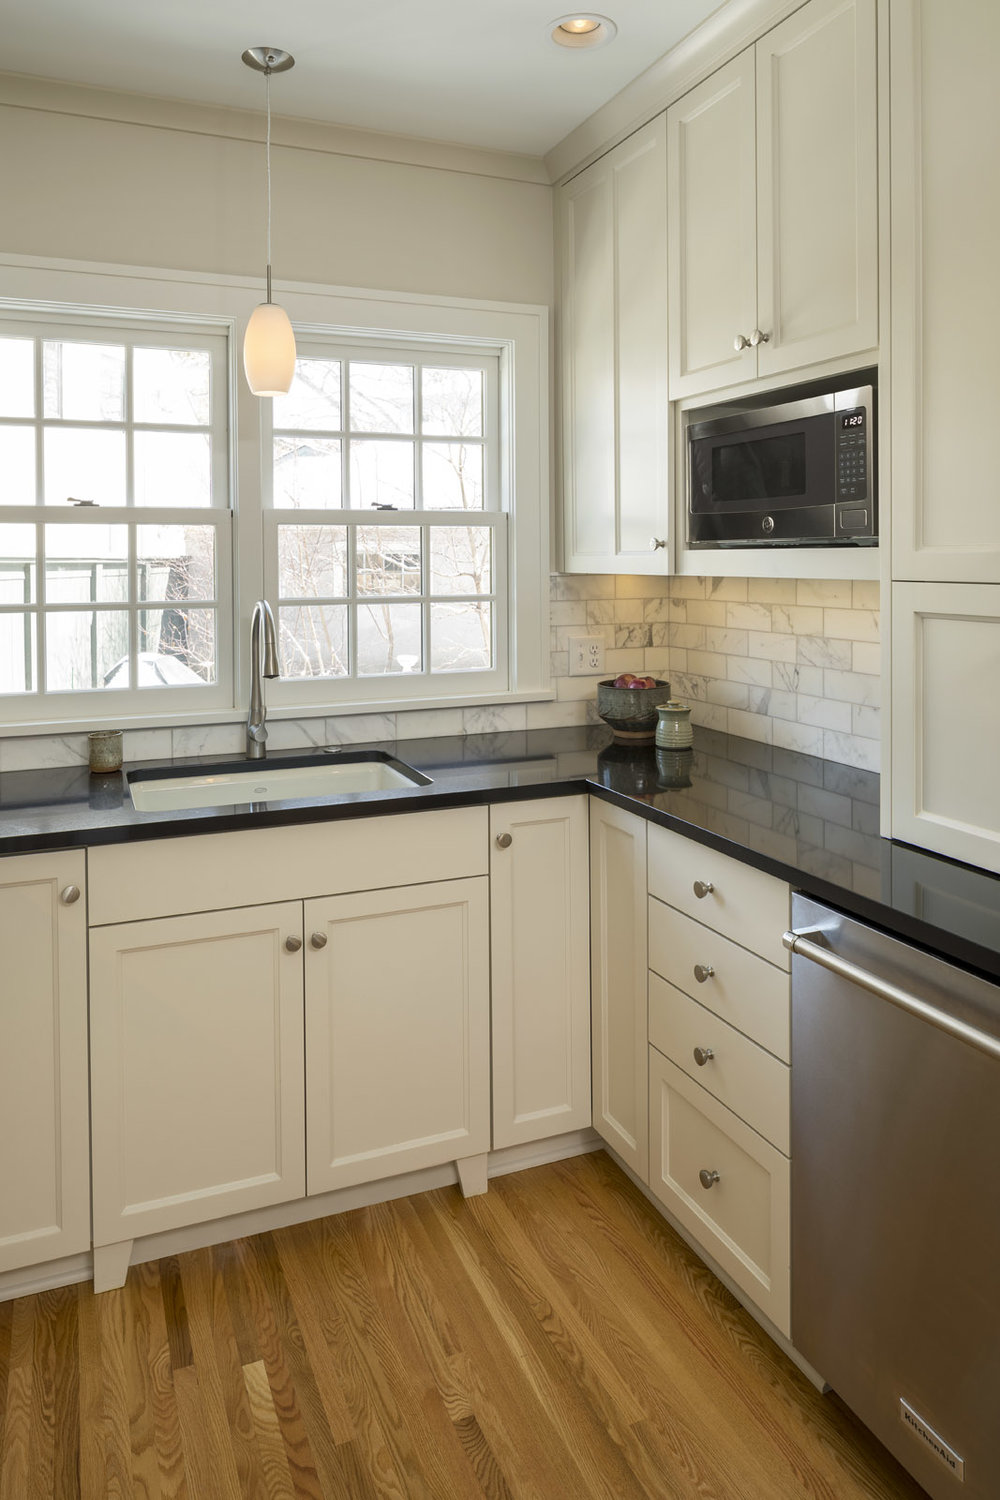 Frameless cabinetry, quartz countertops and a marble-tile backsplash strike just the right balance of old and new.